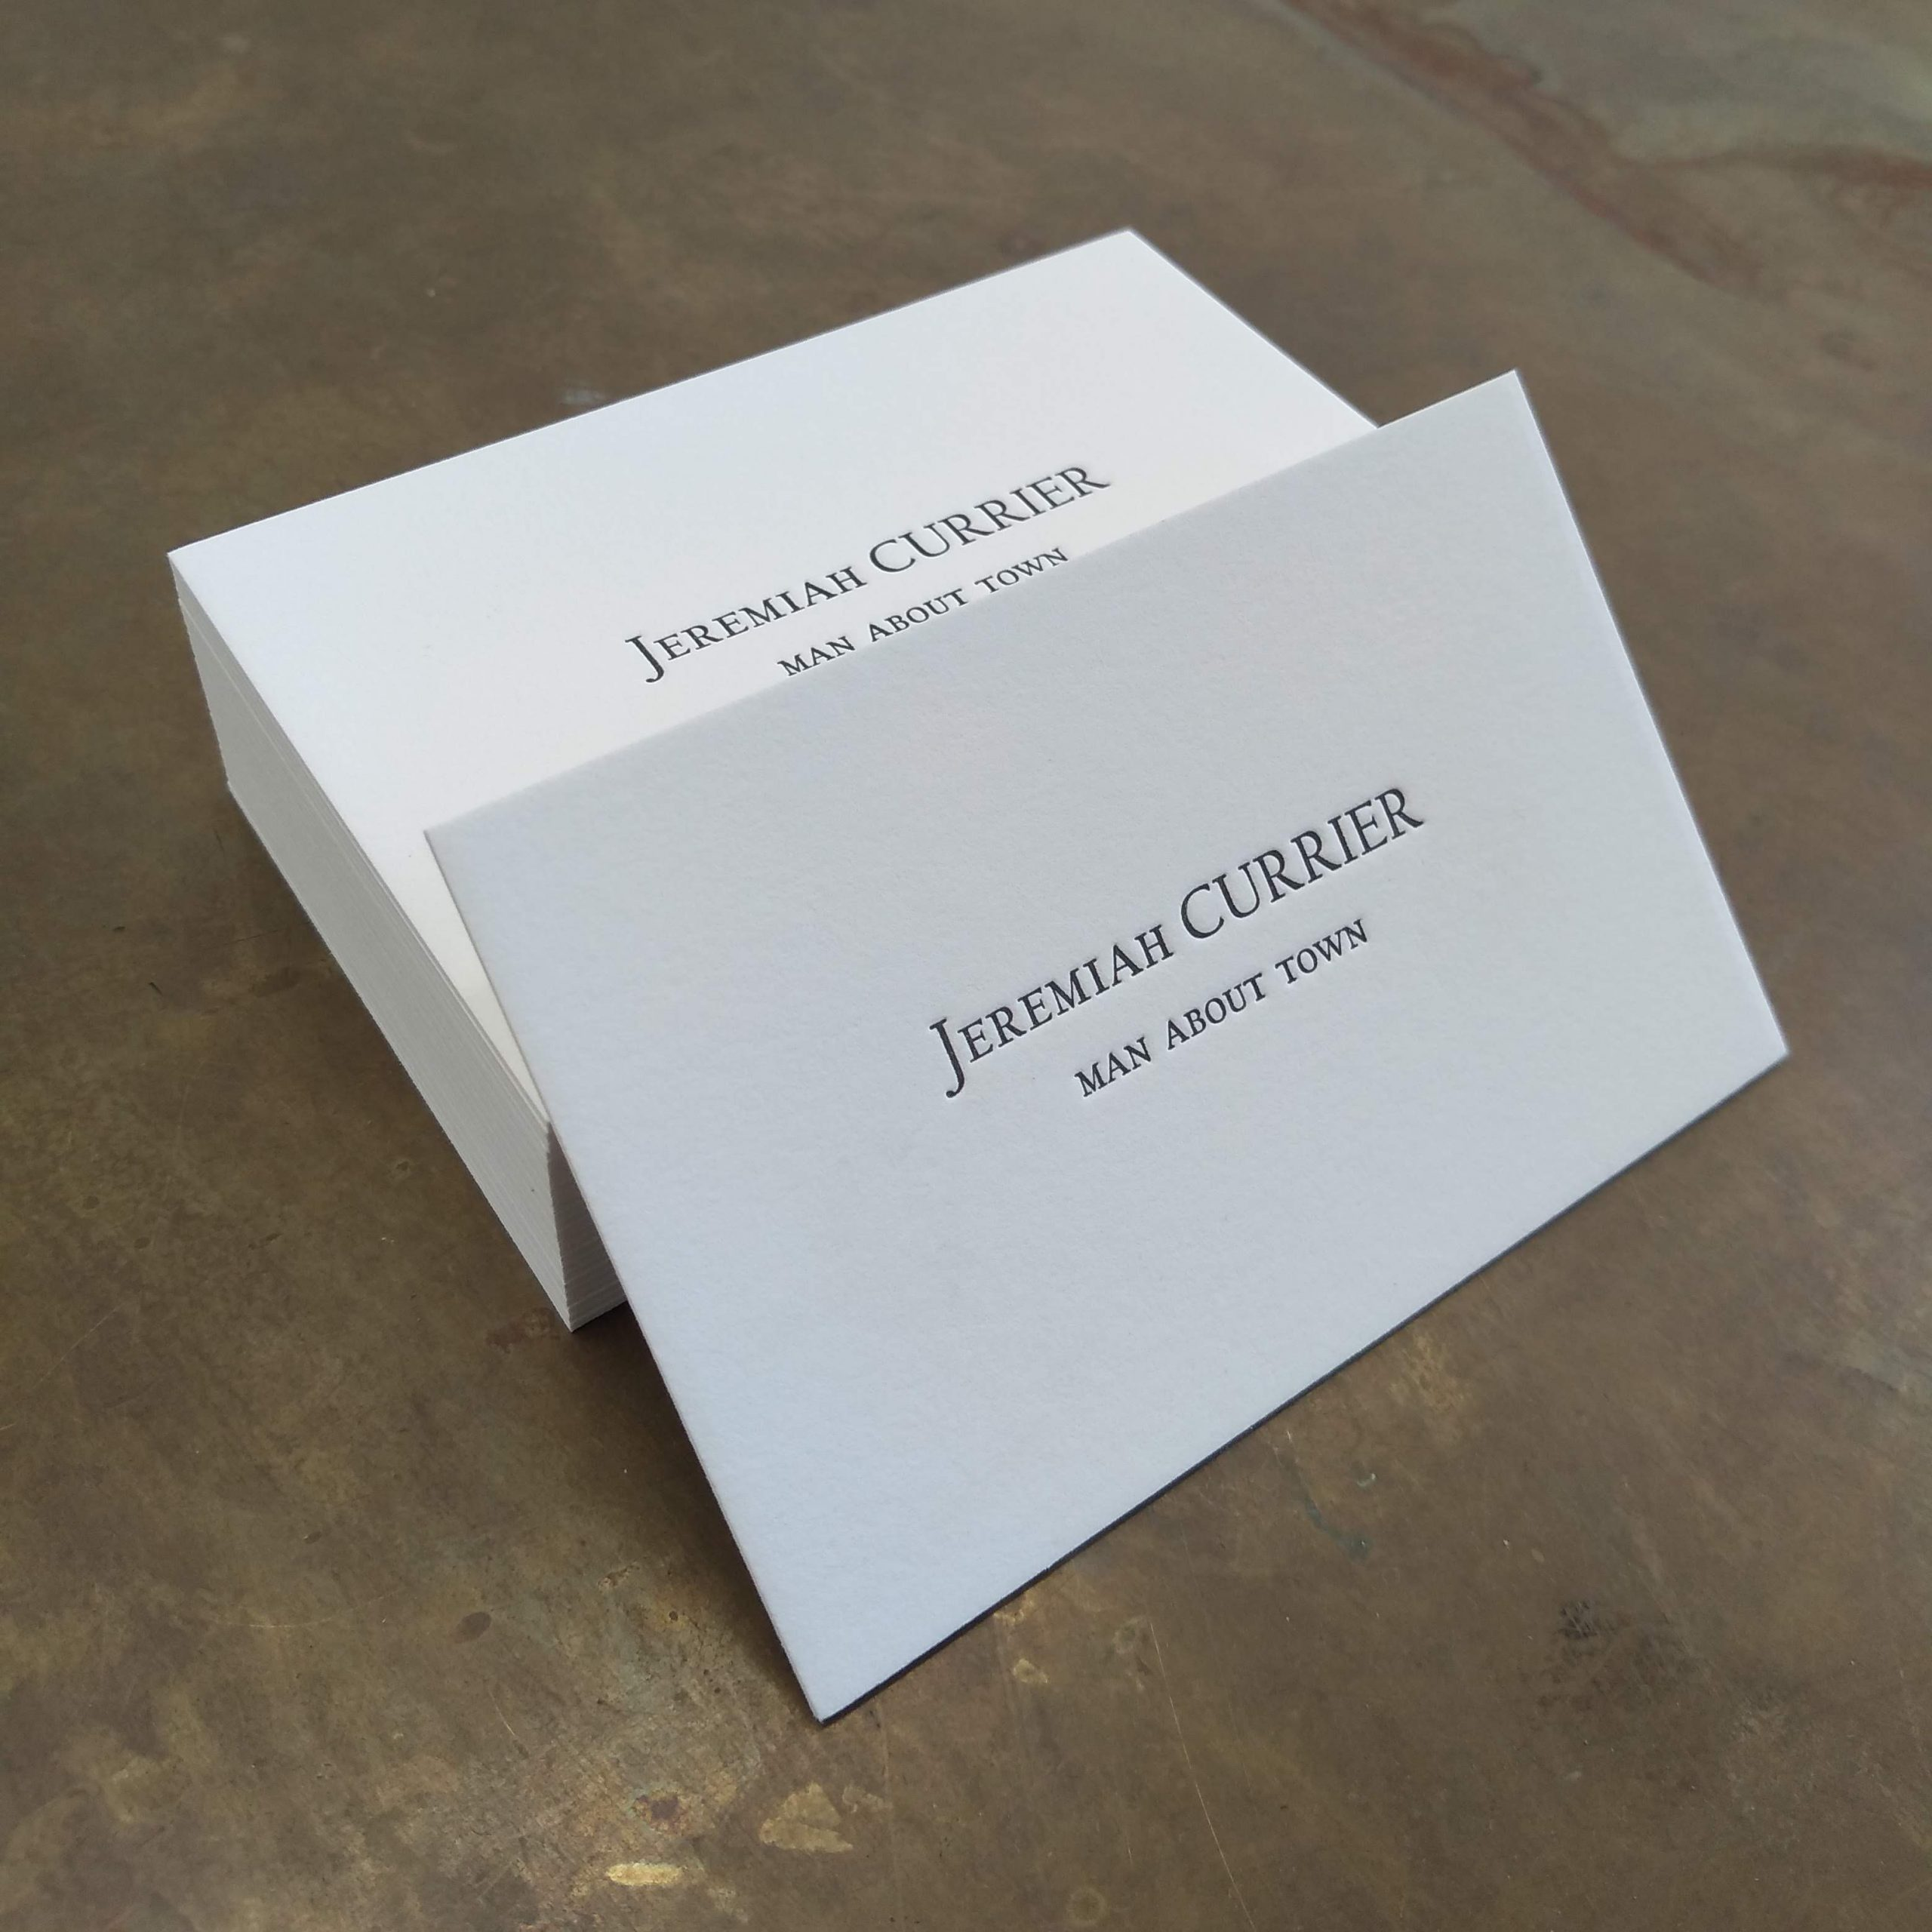 """Off-white letterpress business cards in the style of American Psycho; a single card rests against the stack, facing right. Reads """"Jeremiah CURRIER"""" and below, in smaller caps, """"MAN ABOUT TOWN."""""""